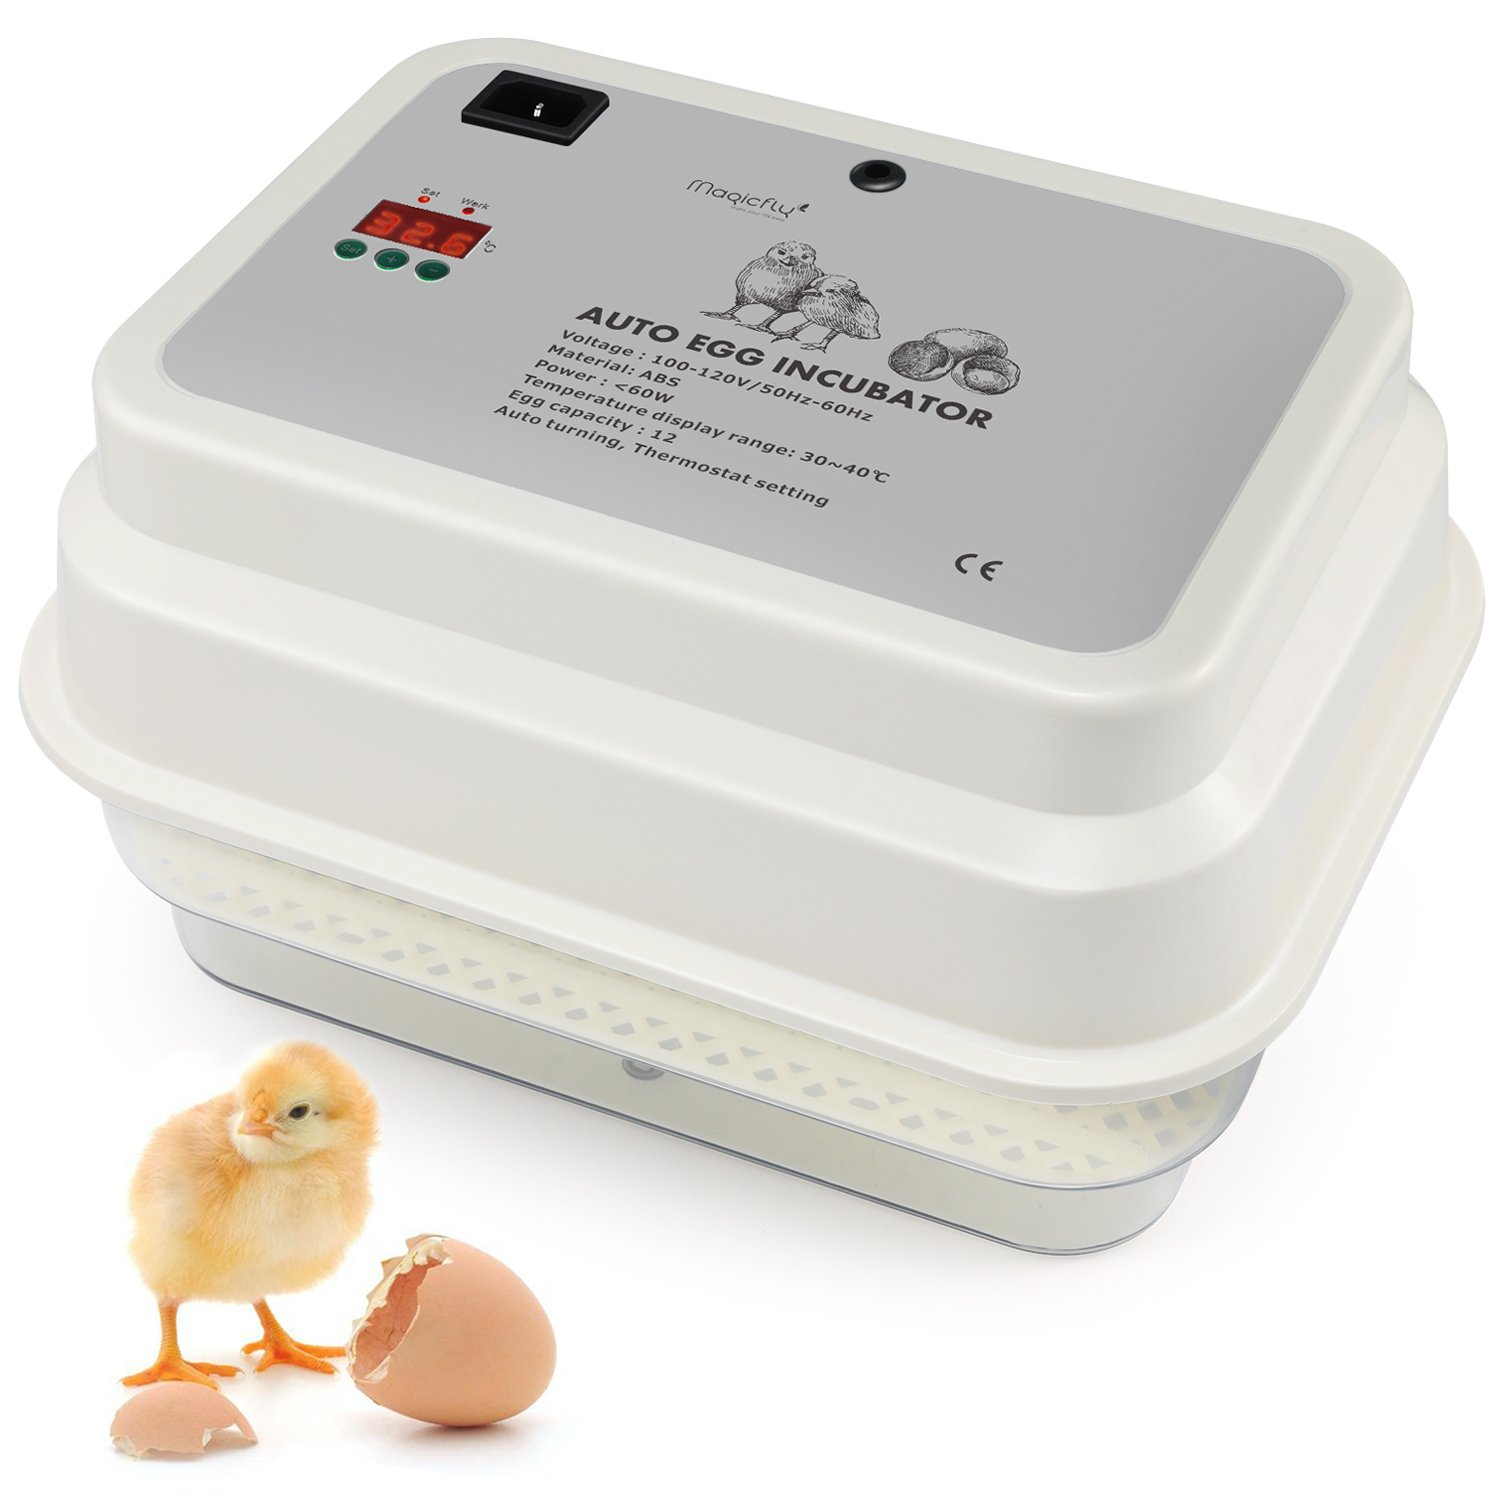 Magicfly Digital Fully Automatic Egg Incubator 9-12 Eggs, Upgrade Quality Poultry Hatcher for Chickens Ducks Goose Birds